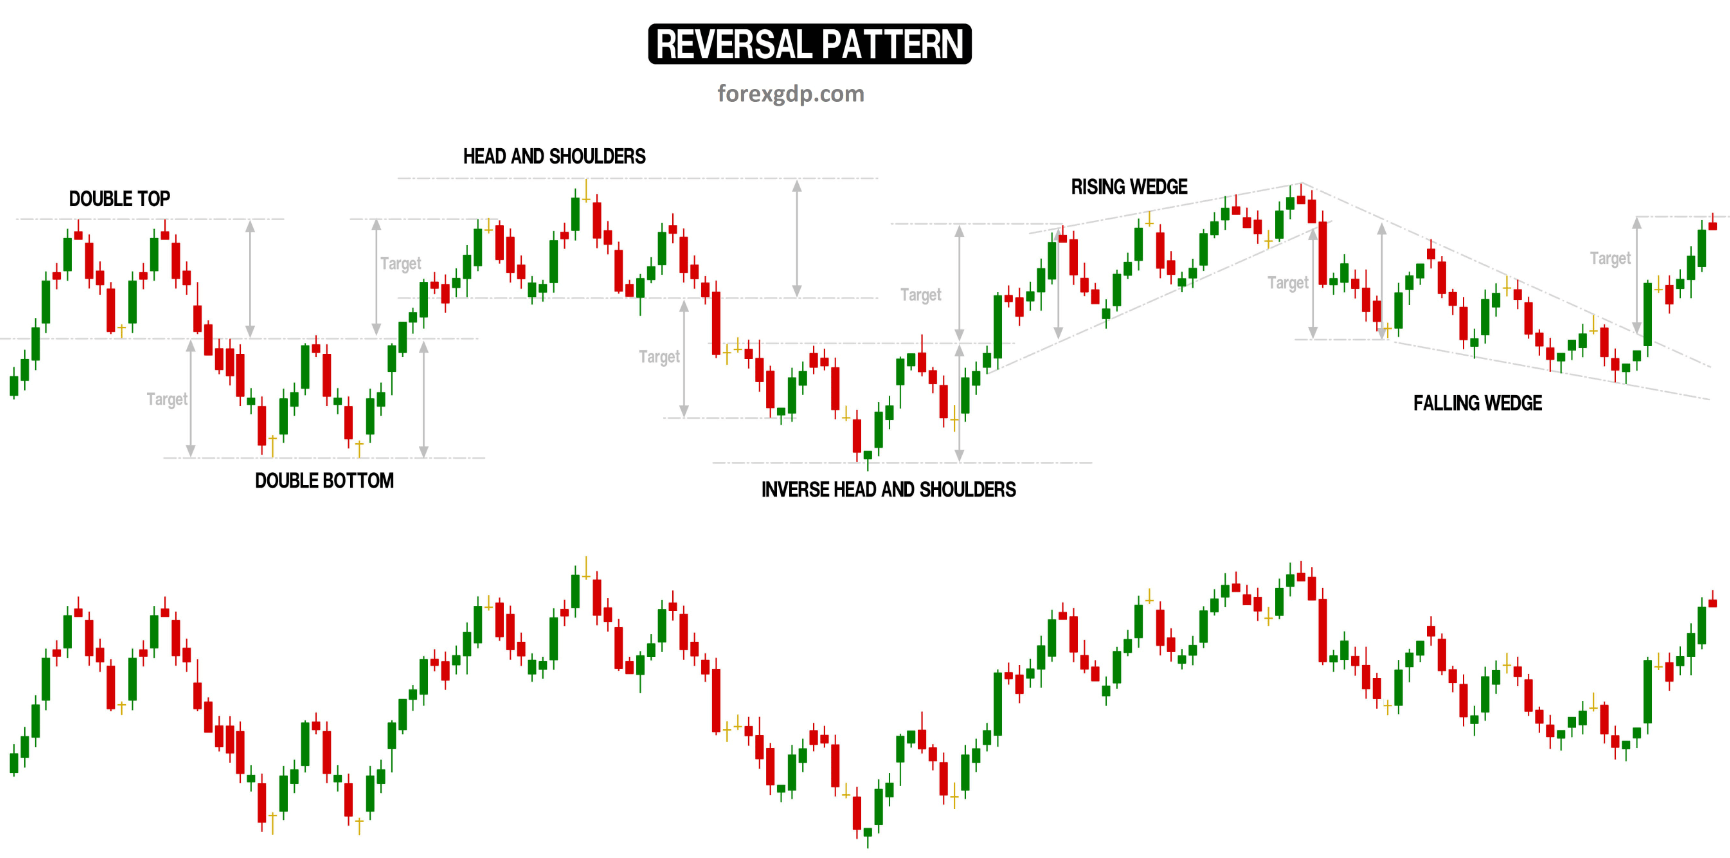 Reversal pattern in the charts